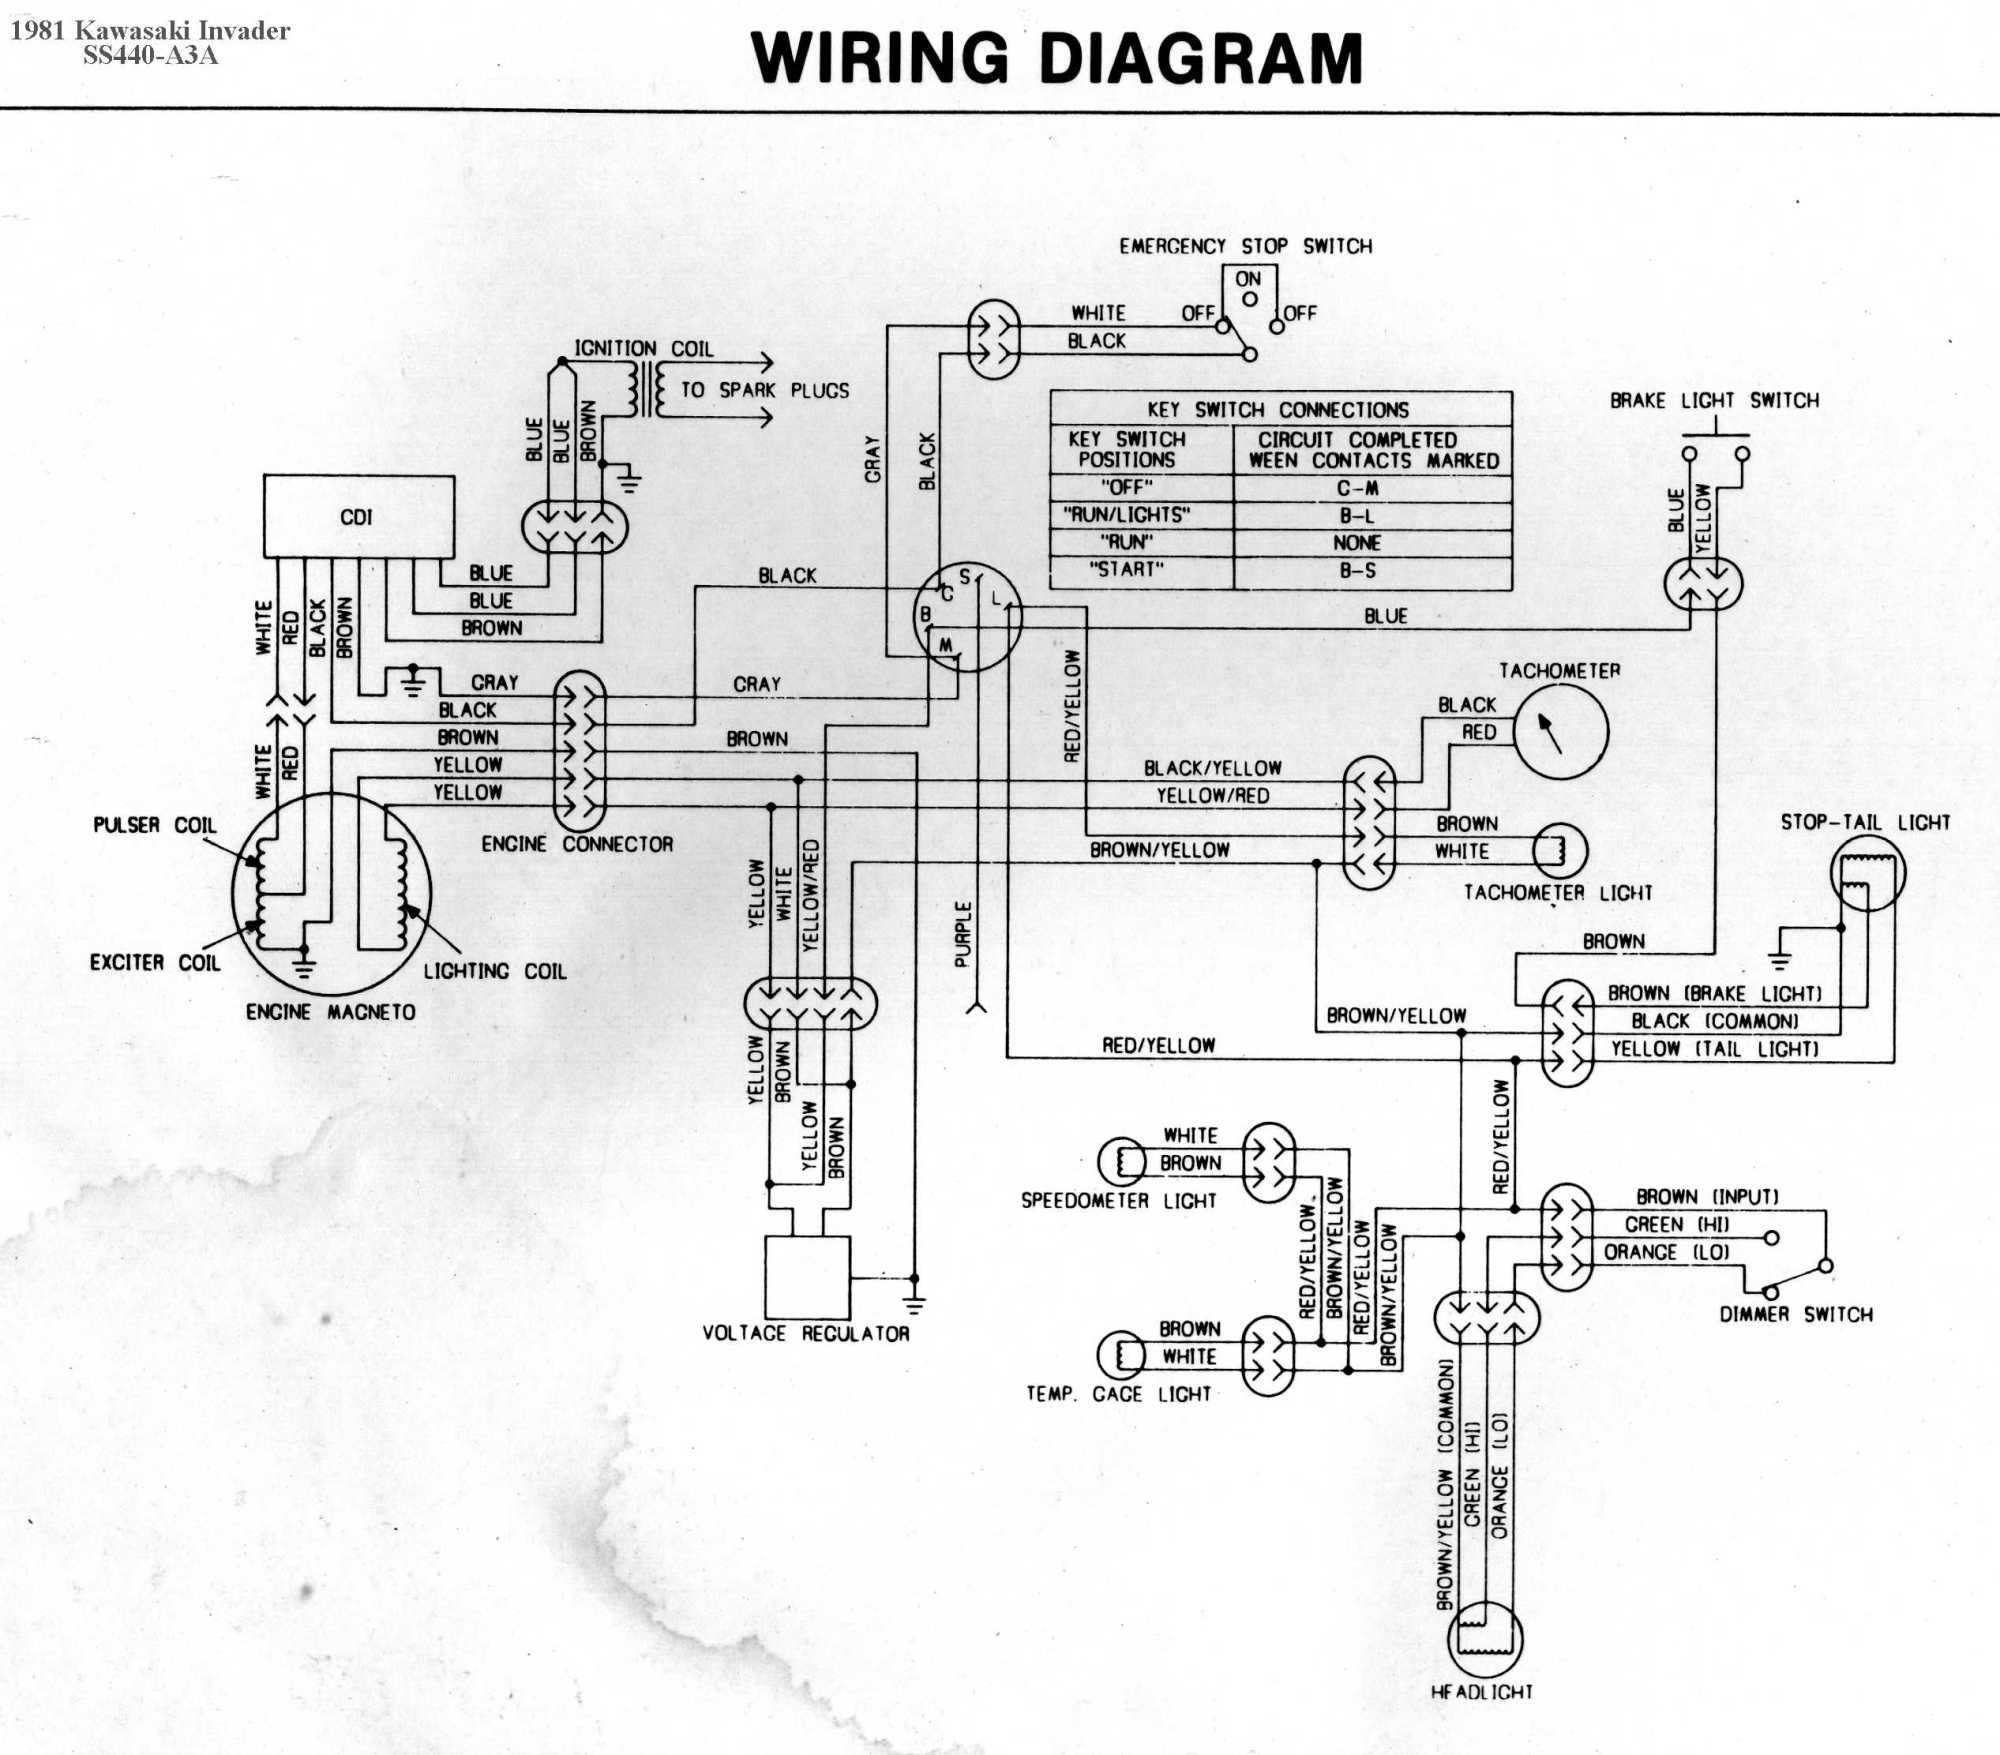 hight resolution of yamaha snowmobile wiring diagrams wiring diagrams scematic rh 46 jessicadonath de 1997 yamaha vmax 1200 1997 yamaha vmax 1200